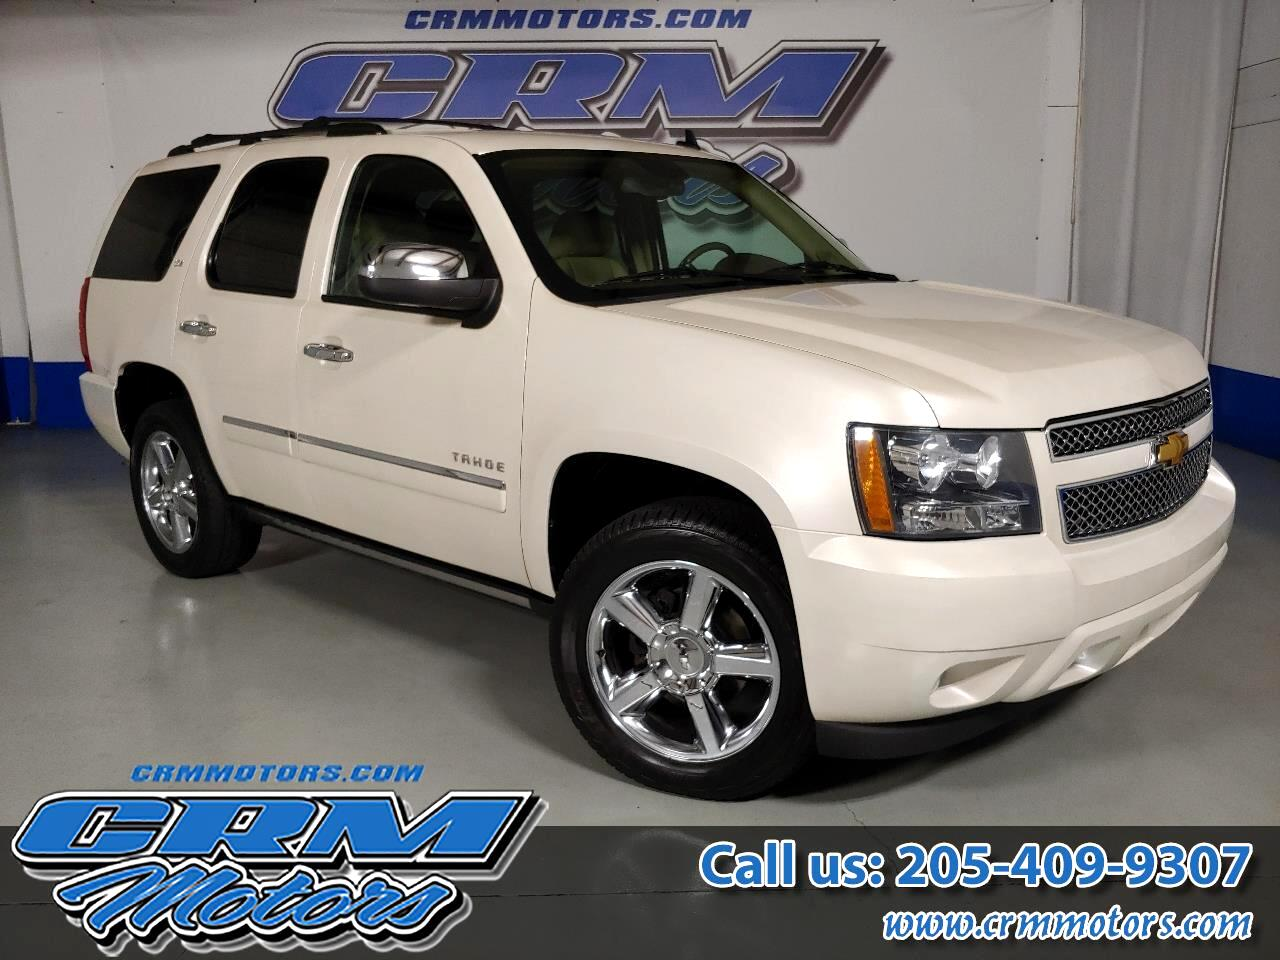 2013 Chevrolet Tahoe 4WD, LTZ, FULLY LOADED, LEATHER, HTD SEAT, NAV, SU